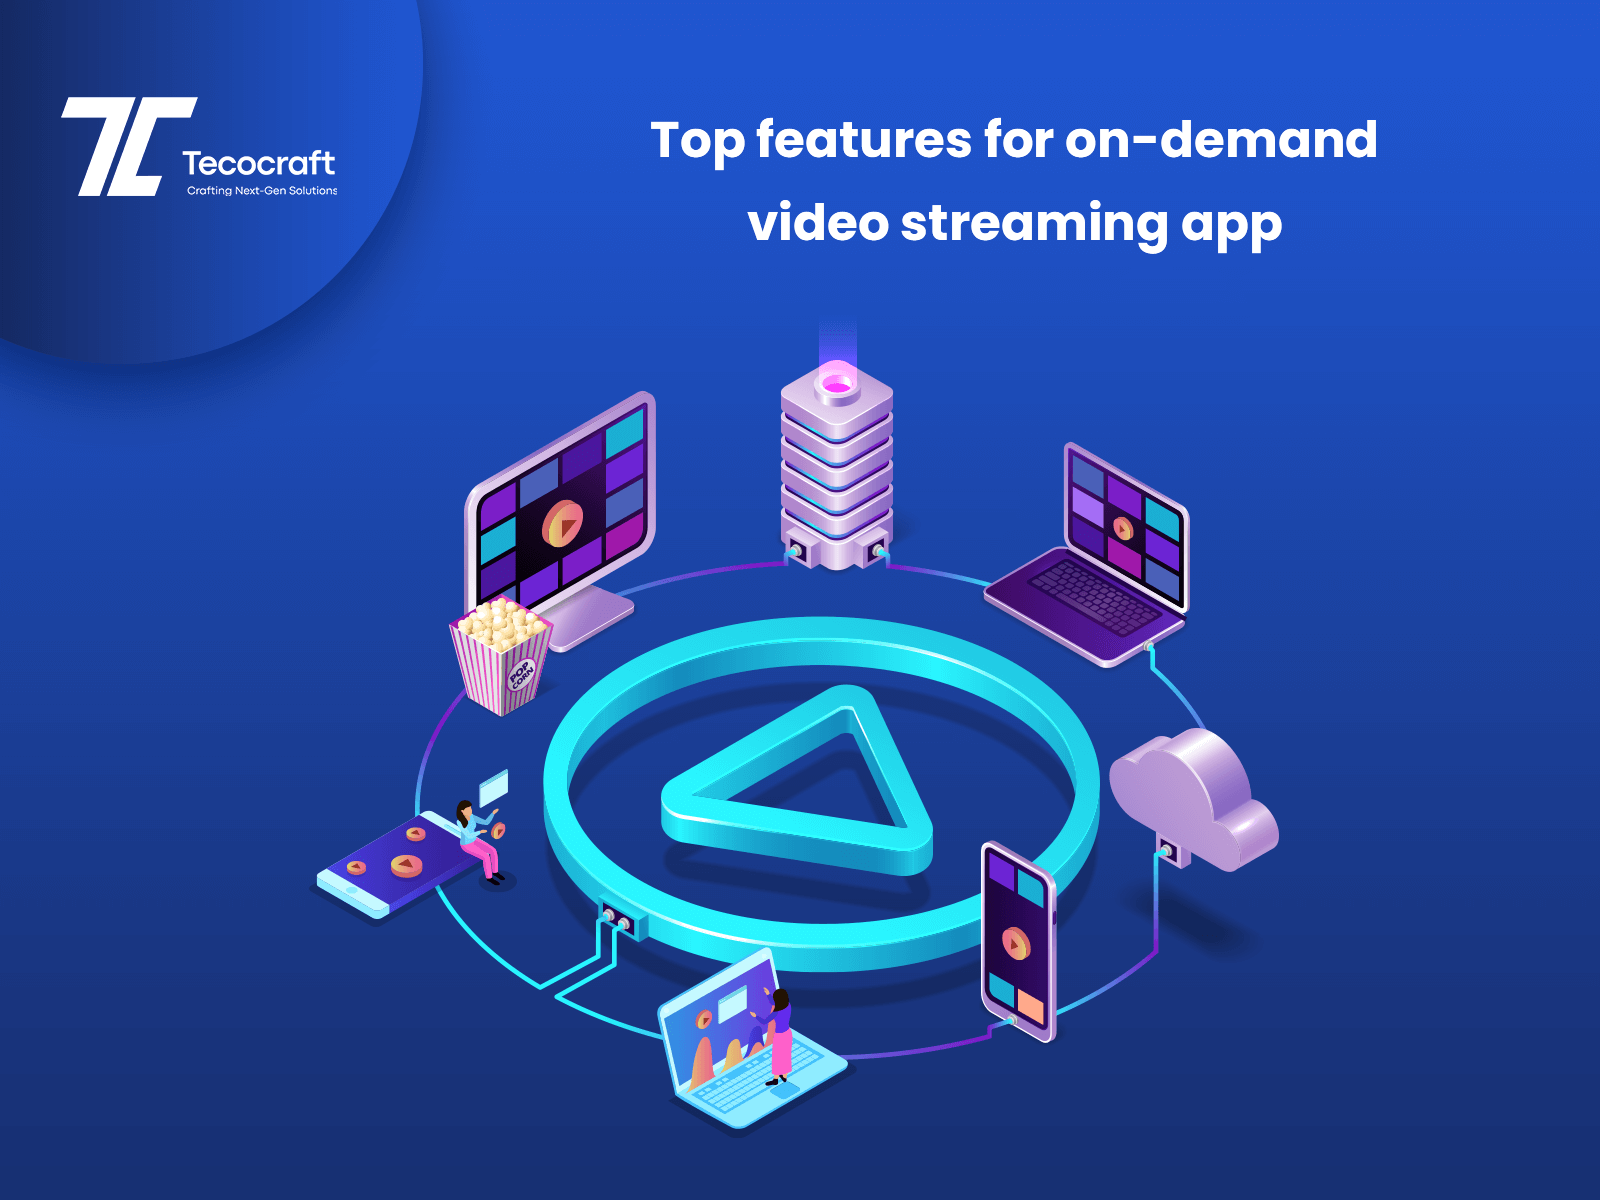 Features For On-Demand Video Streaming App